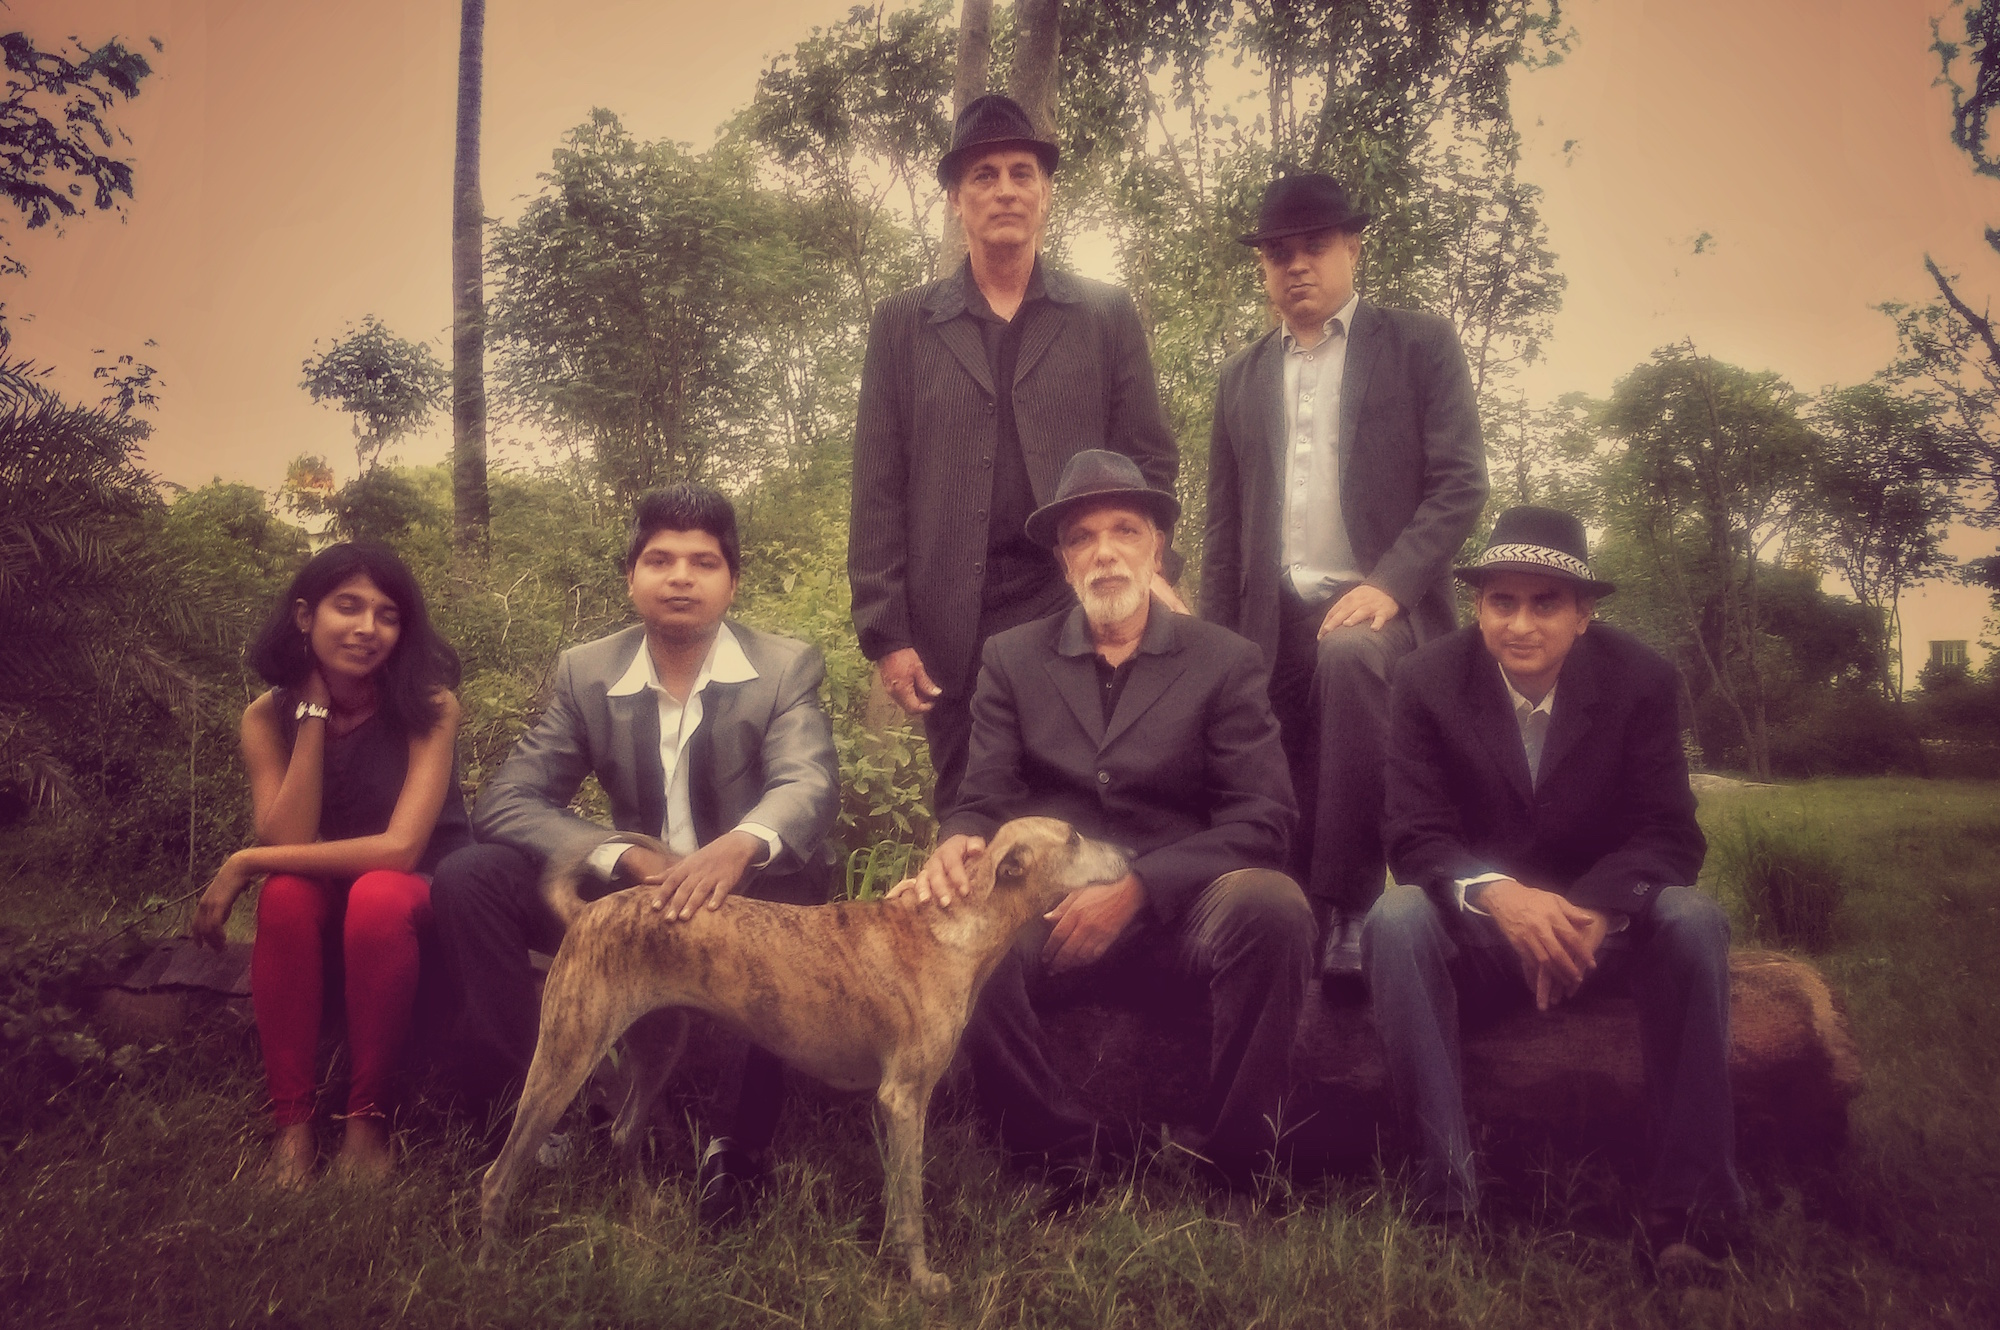 Front row, from left to right singer Rajni Shivaram; drummer Shreyas Sel; a Hoskote hound called Kutti; lead guitarist Peter Isaac; and Raveen Panday, keyboards. Back row, from left to right, Owen Bosen, electric bass; and Mukut Chakravarti, additional keyboards